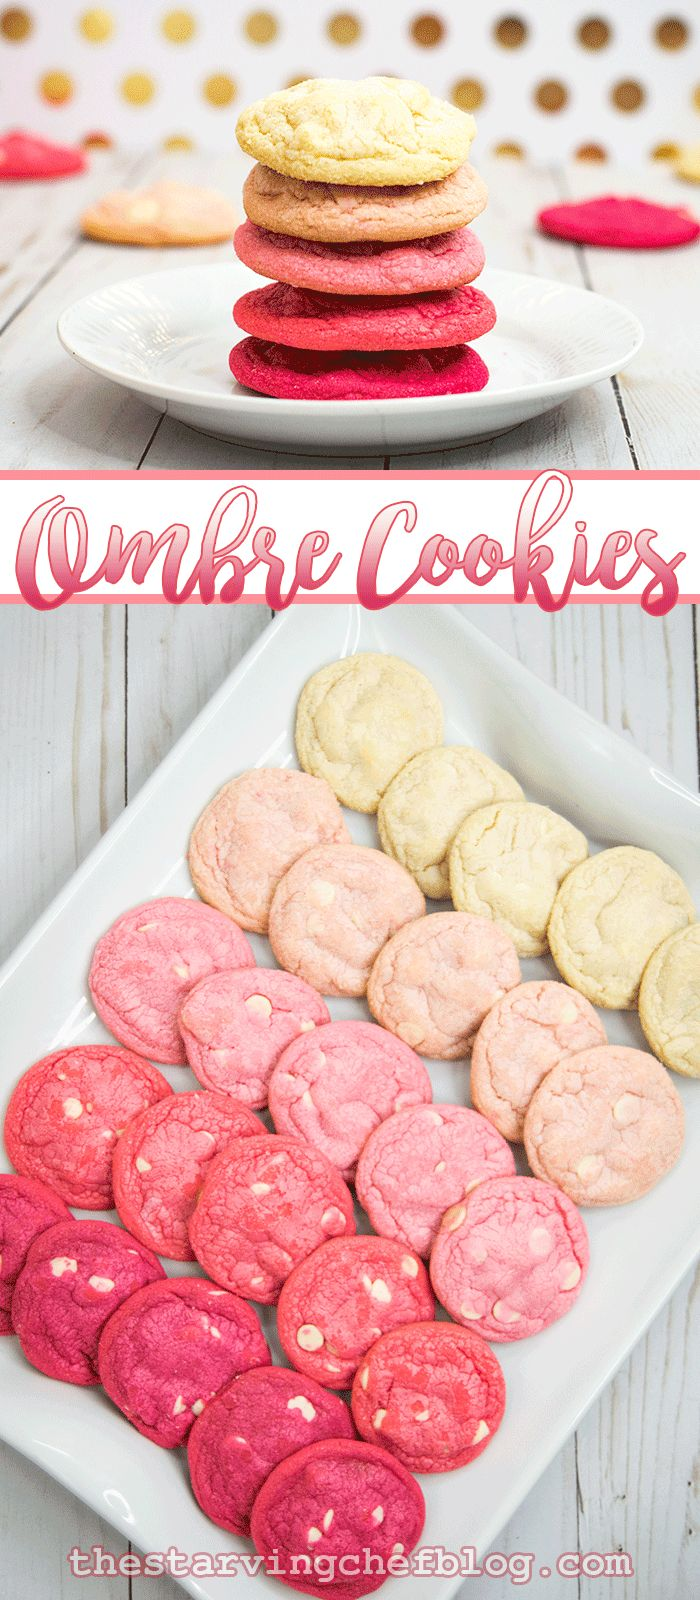 The Starving Chef | Ombre cookies - you can do any colors you want on a white chocolate chip cookie!